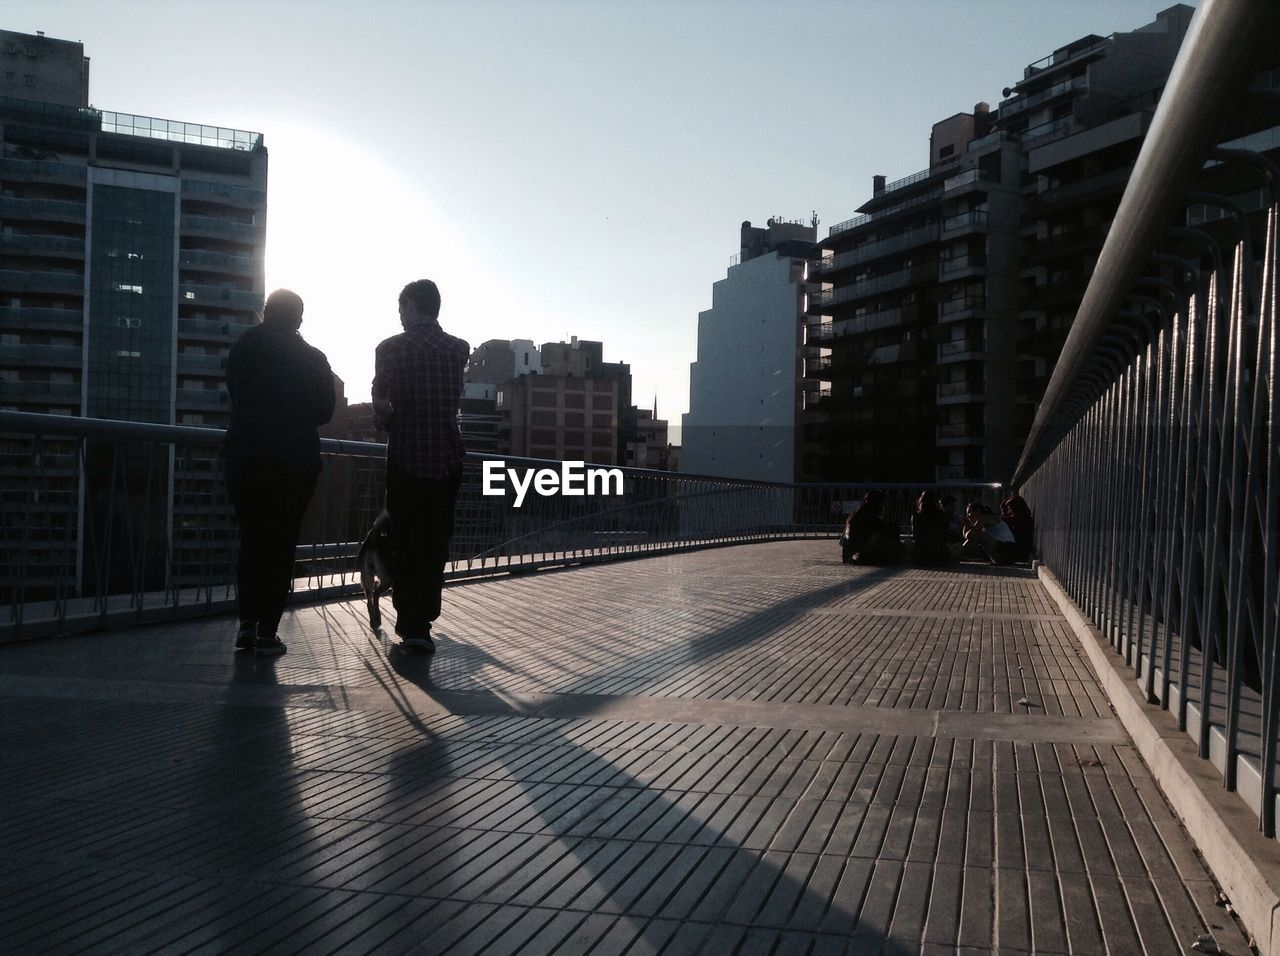 People On Elevated Walkway In City During Sunny Day